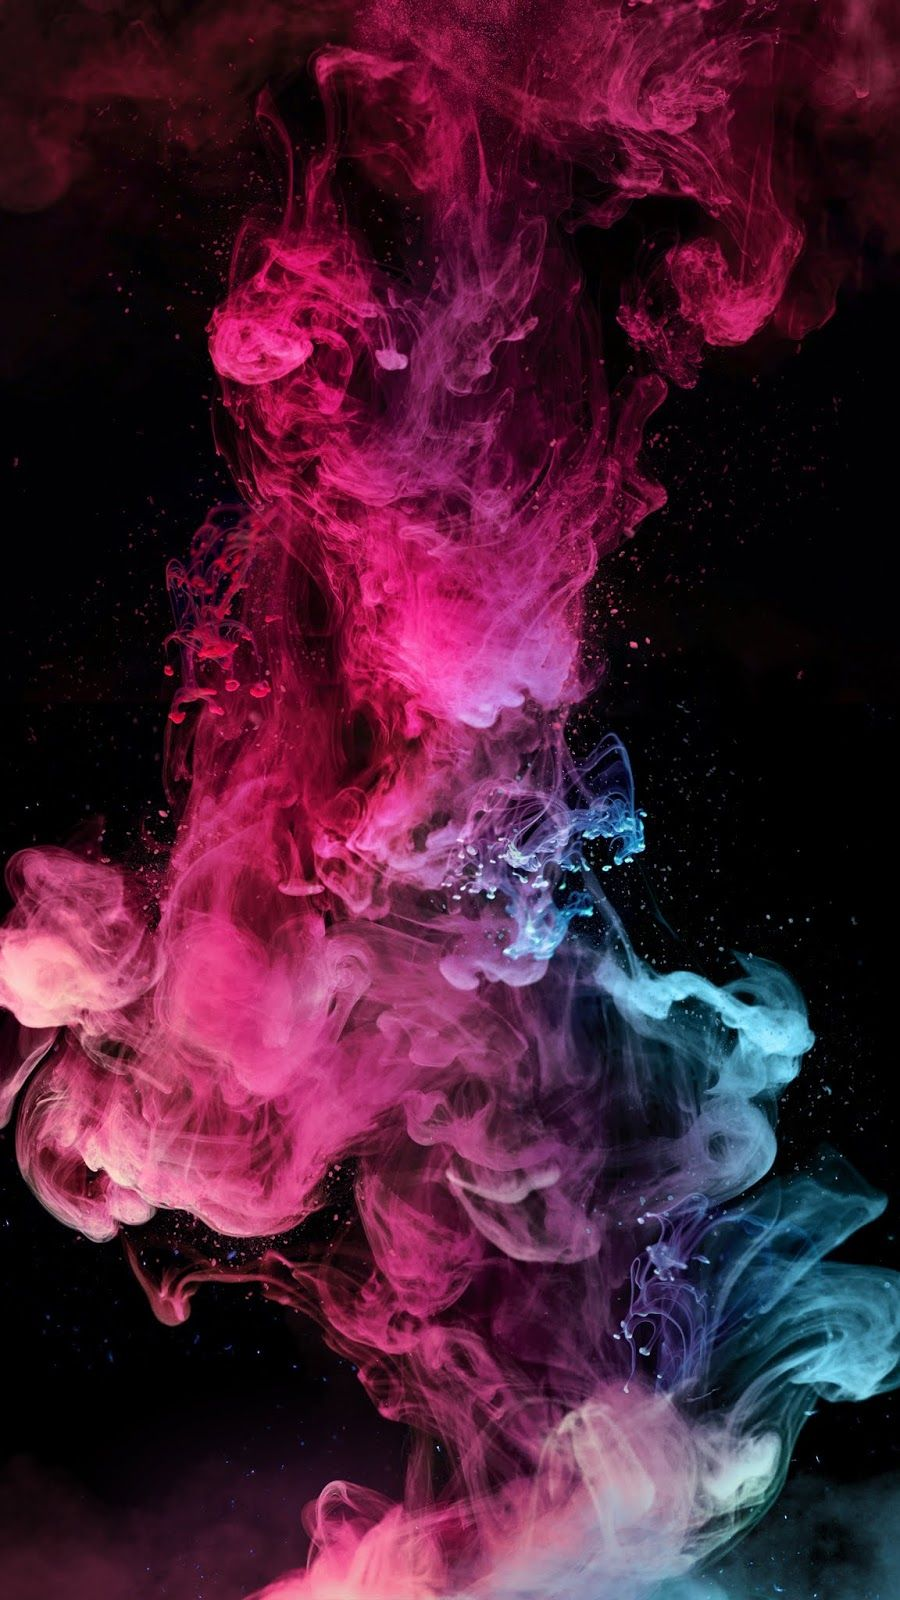 Colorful Splash wallpaper iphone android background followme 900x1600